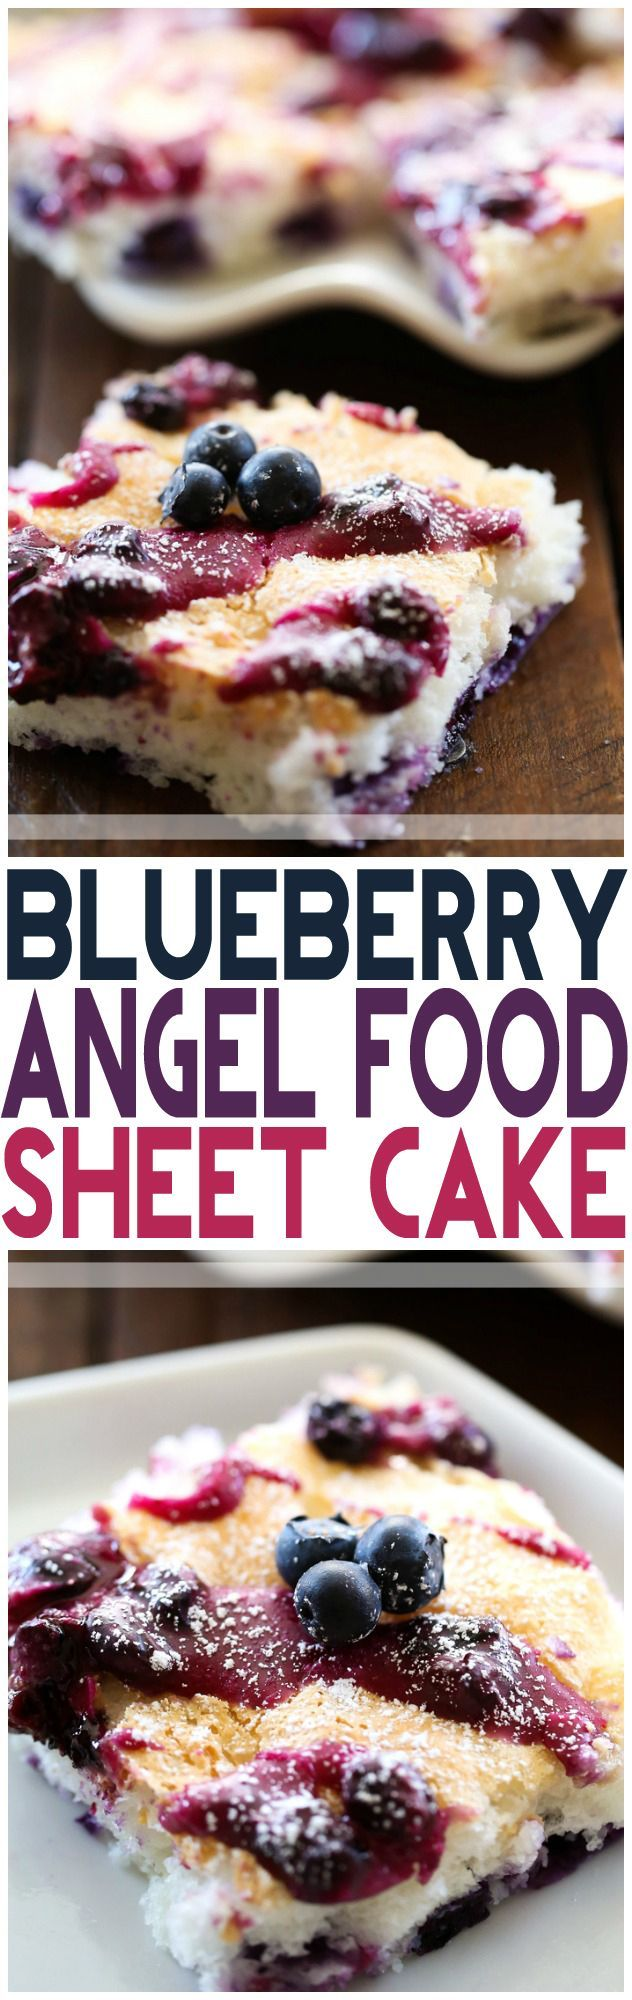 Blueberry Angel Food Sheet Cake... this dessert is SO delicious and a perfect sweet tooth fix! It is AMAZING!